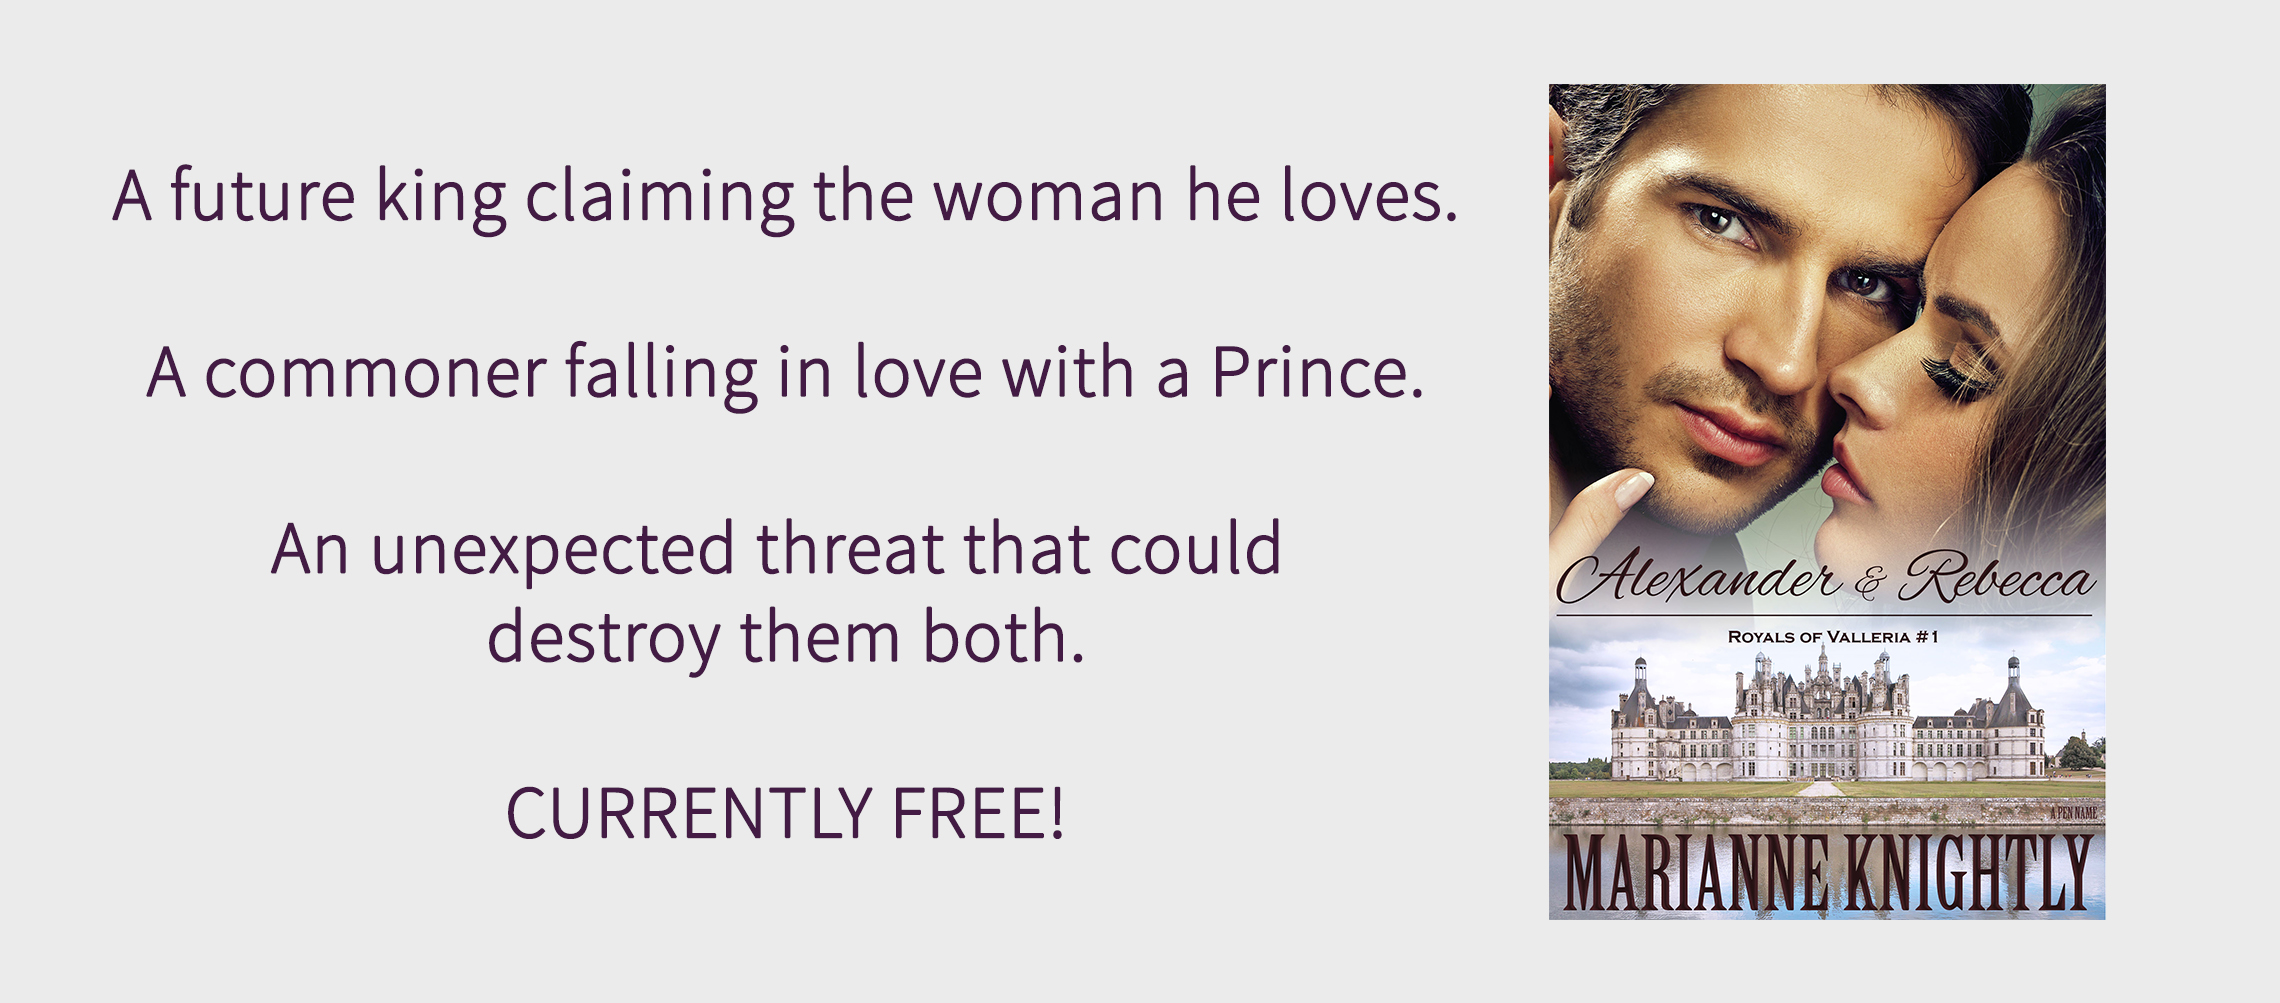 Alexander & Rebecca (Royals of Valleria #1) by Marianne Knightly